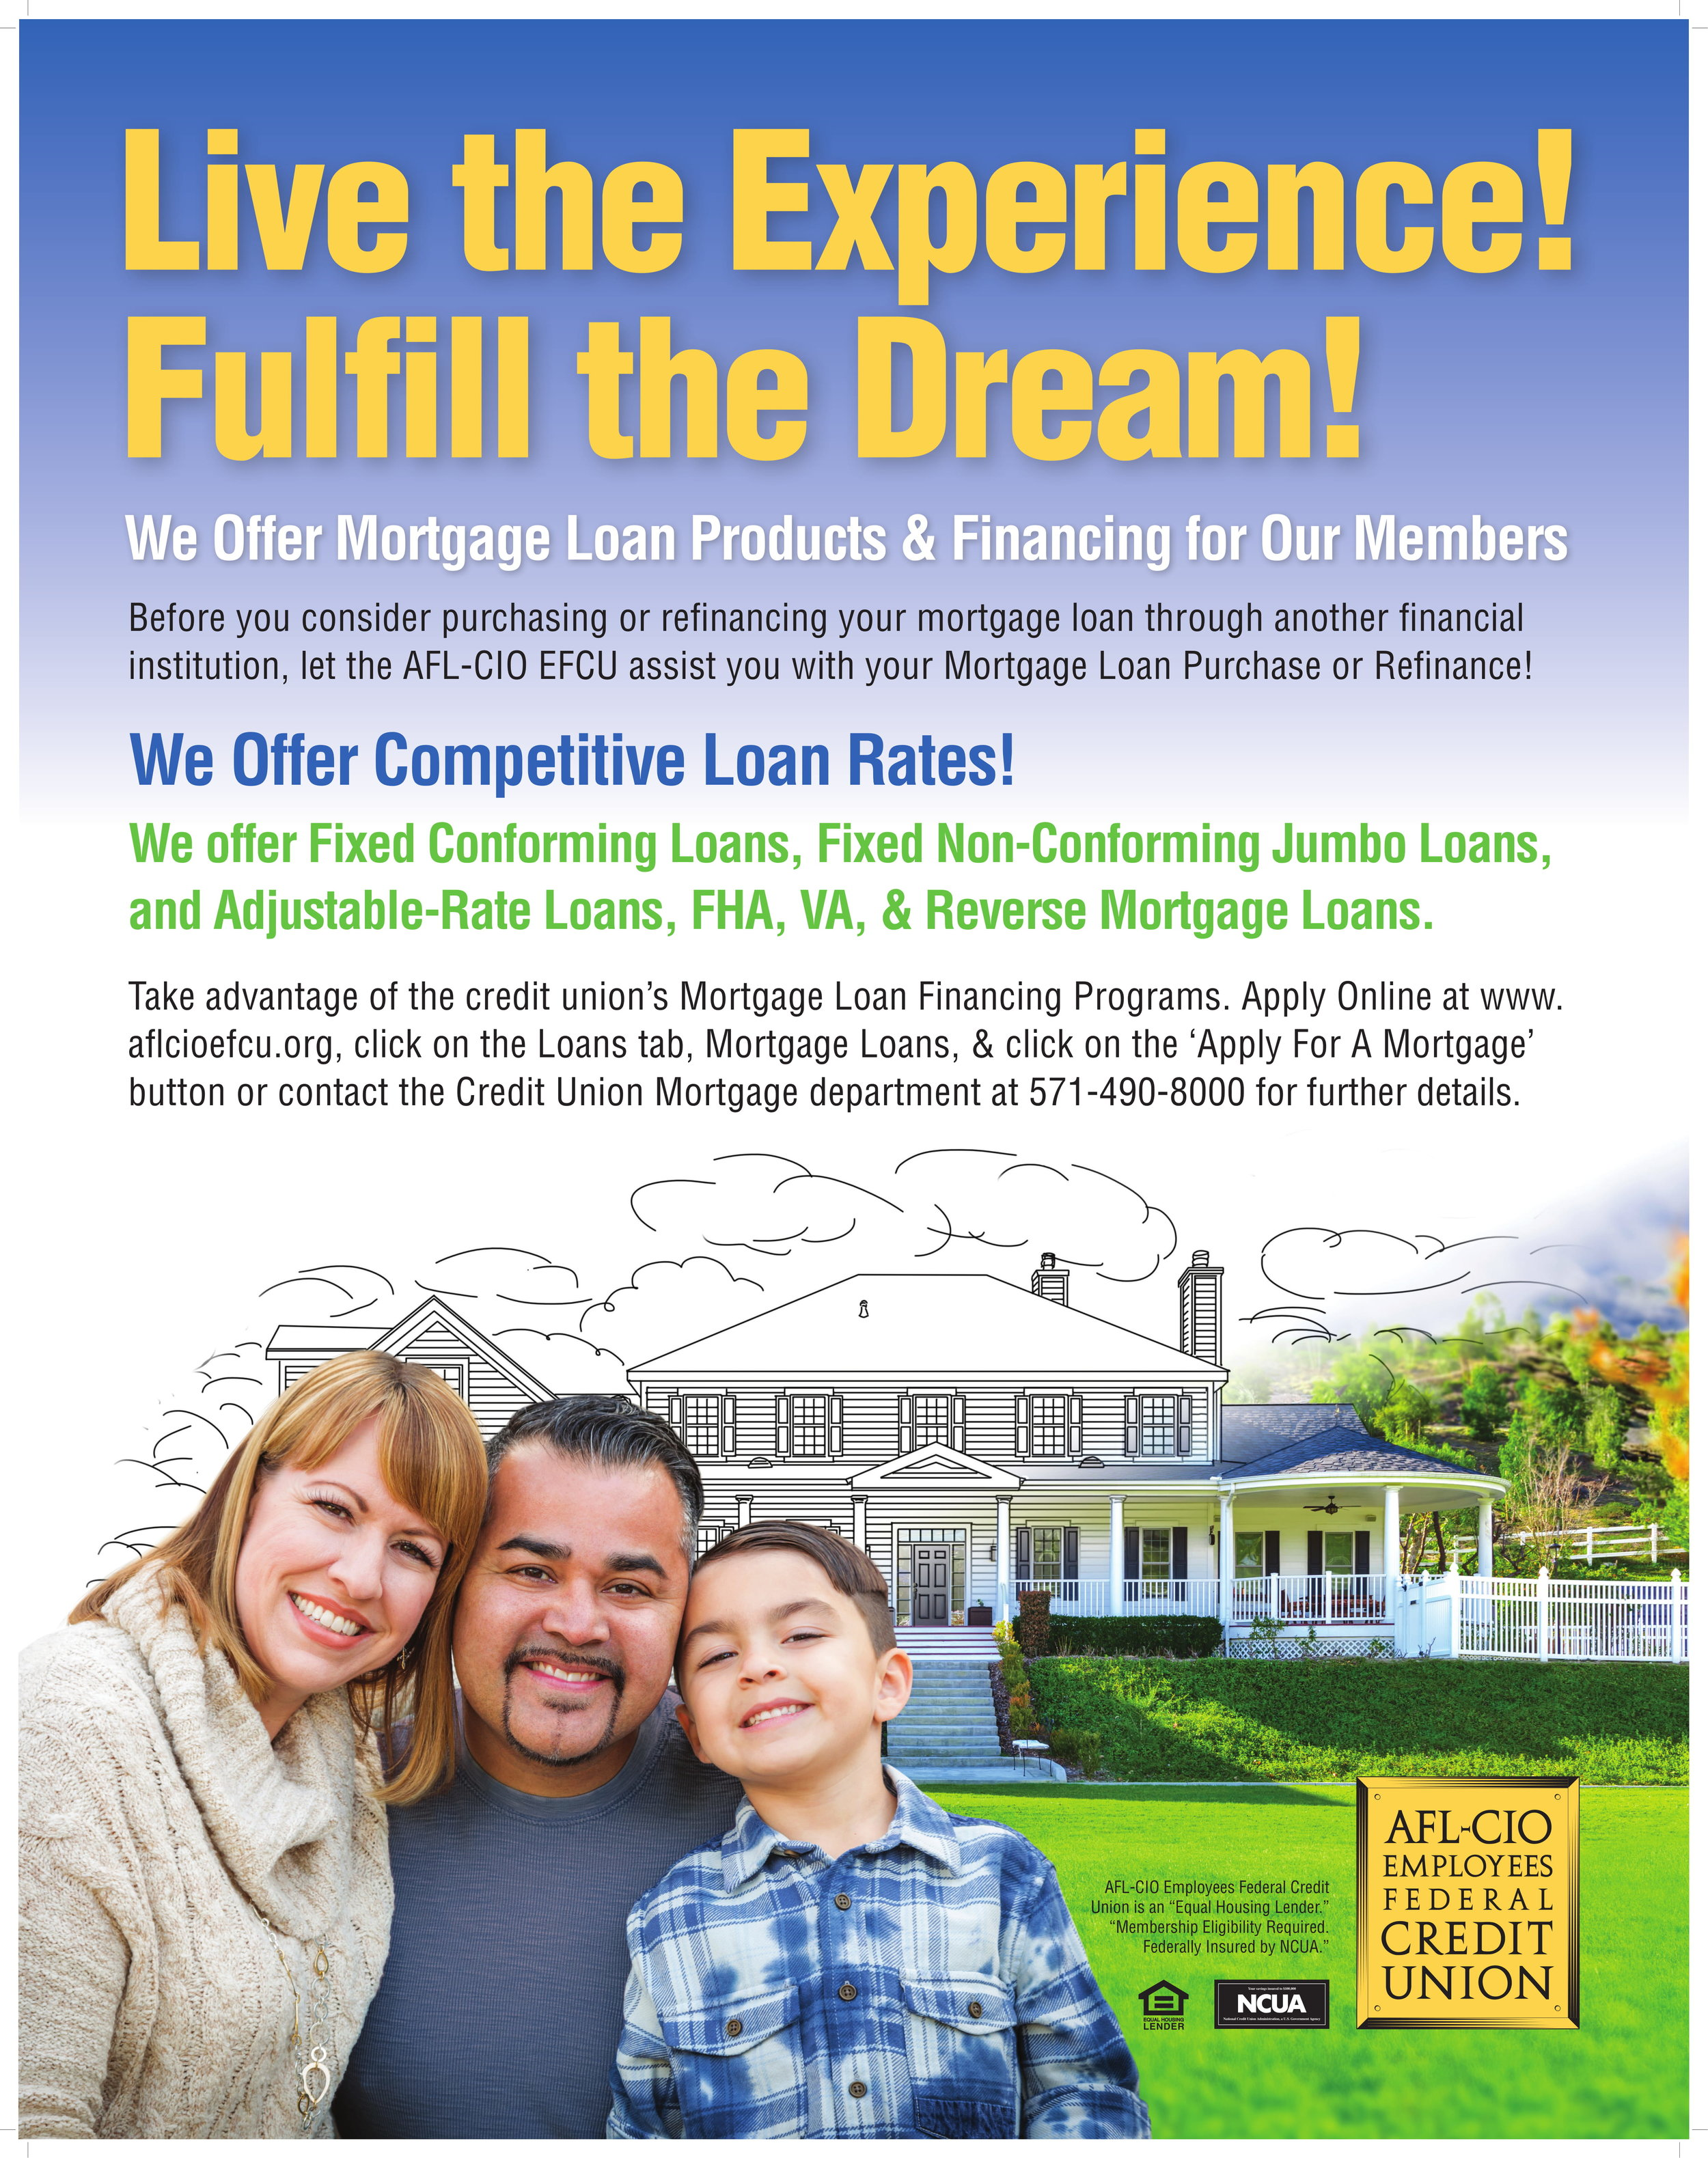 Live the Experience! Fulfill the Dream! We offer mortgage loan products and financing to our members. Contact us to learn more.